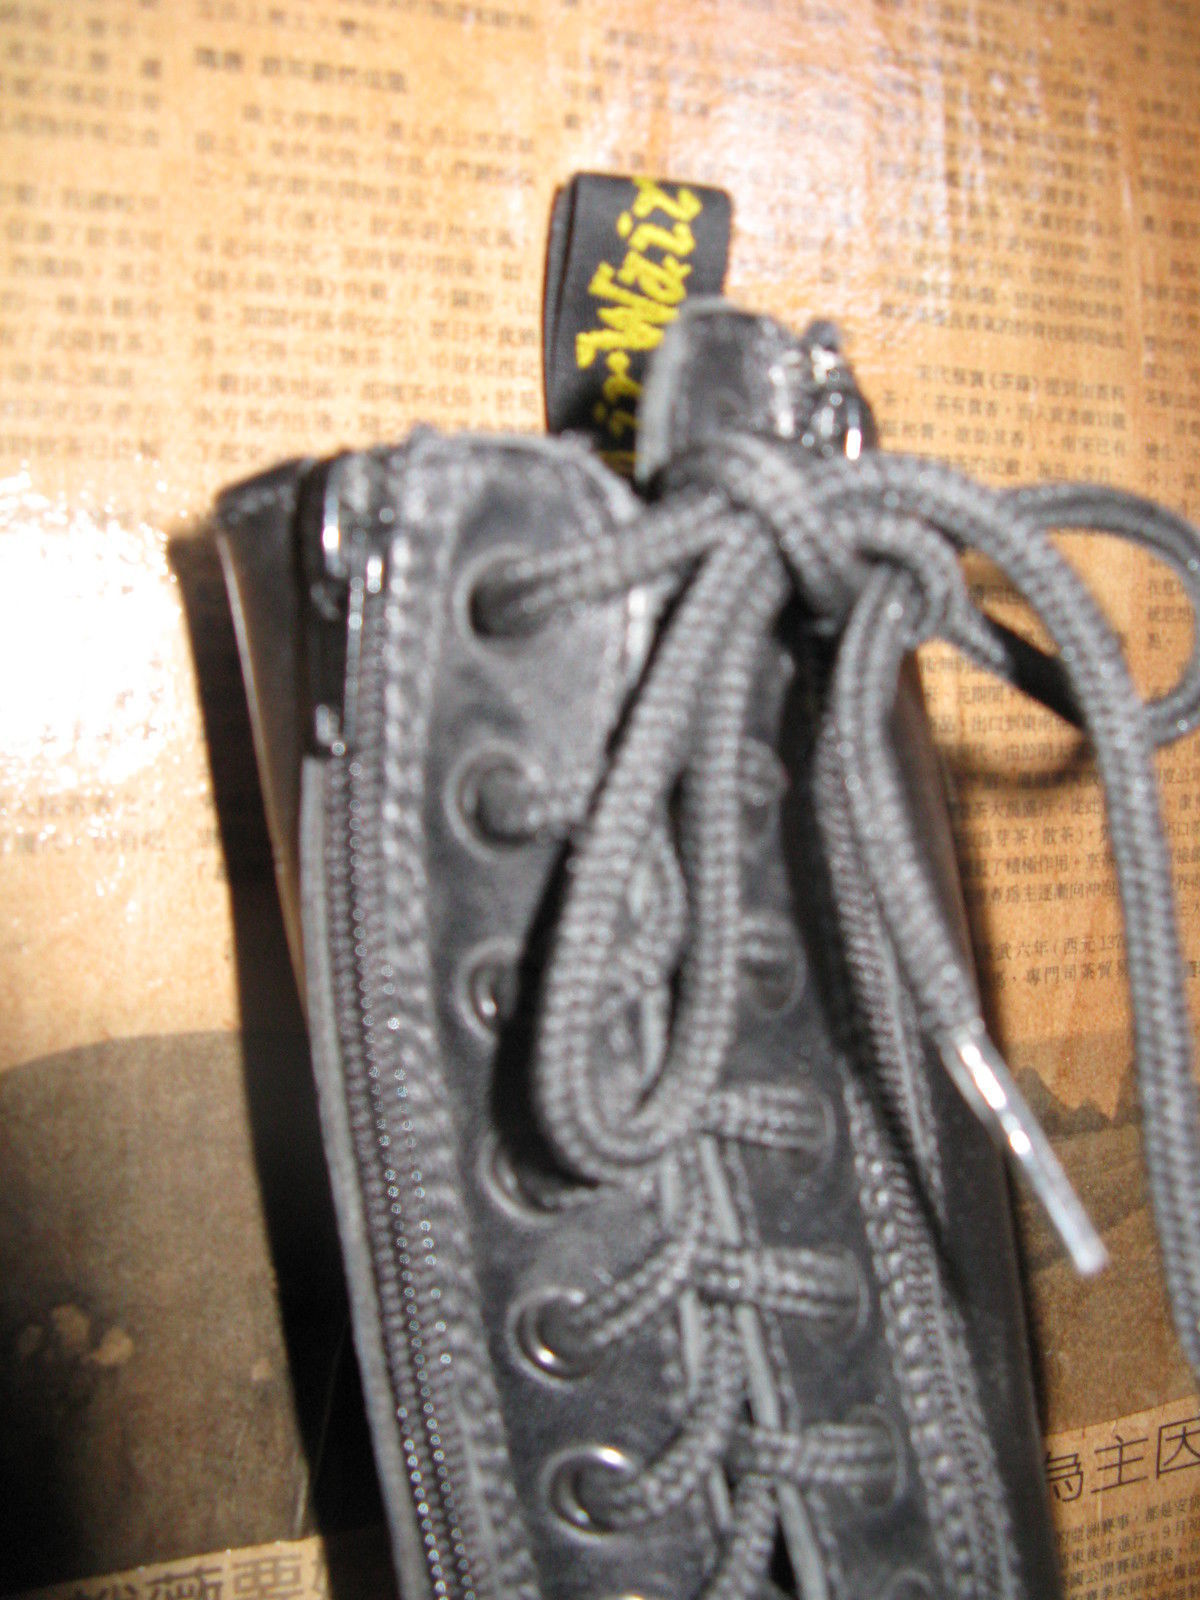 14 eye DOCs Dr Martens speed laces ENGLAND!! butter leather boots 6.5 UK4 36.5